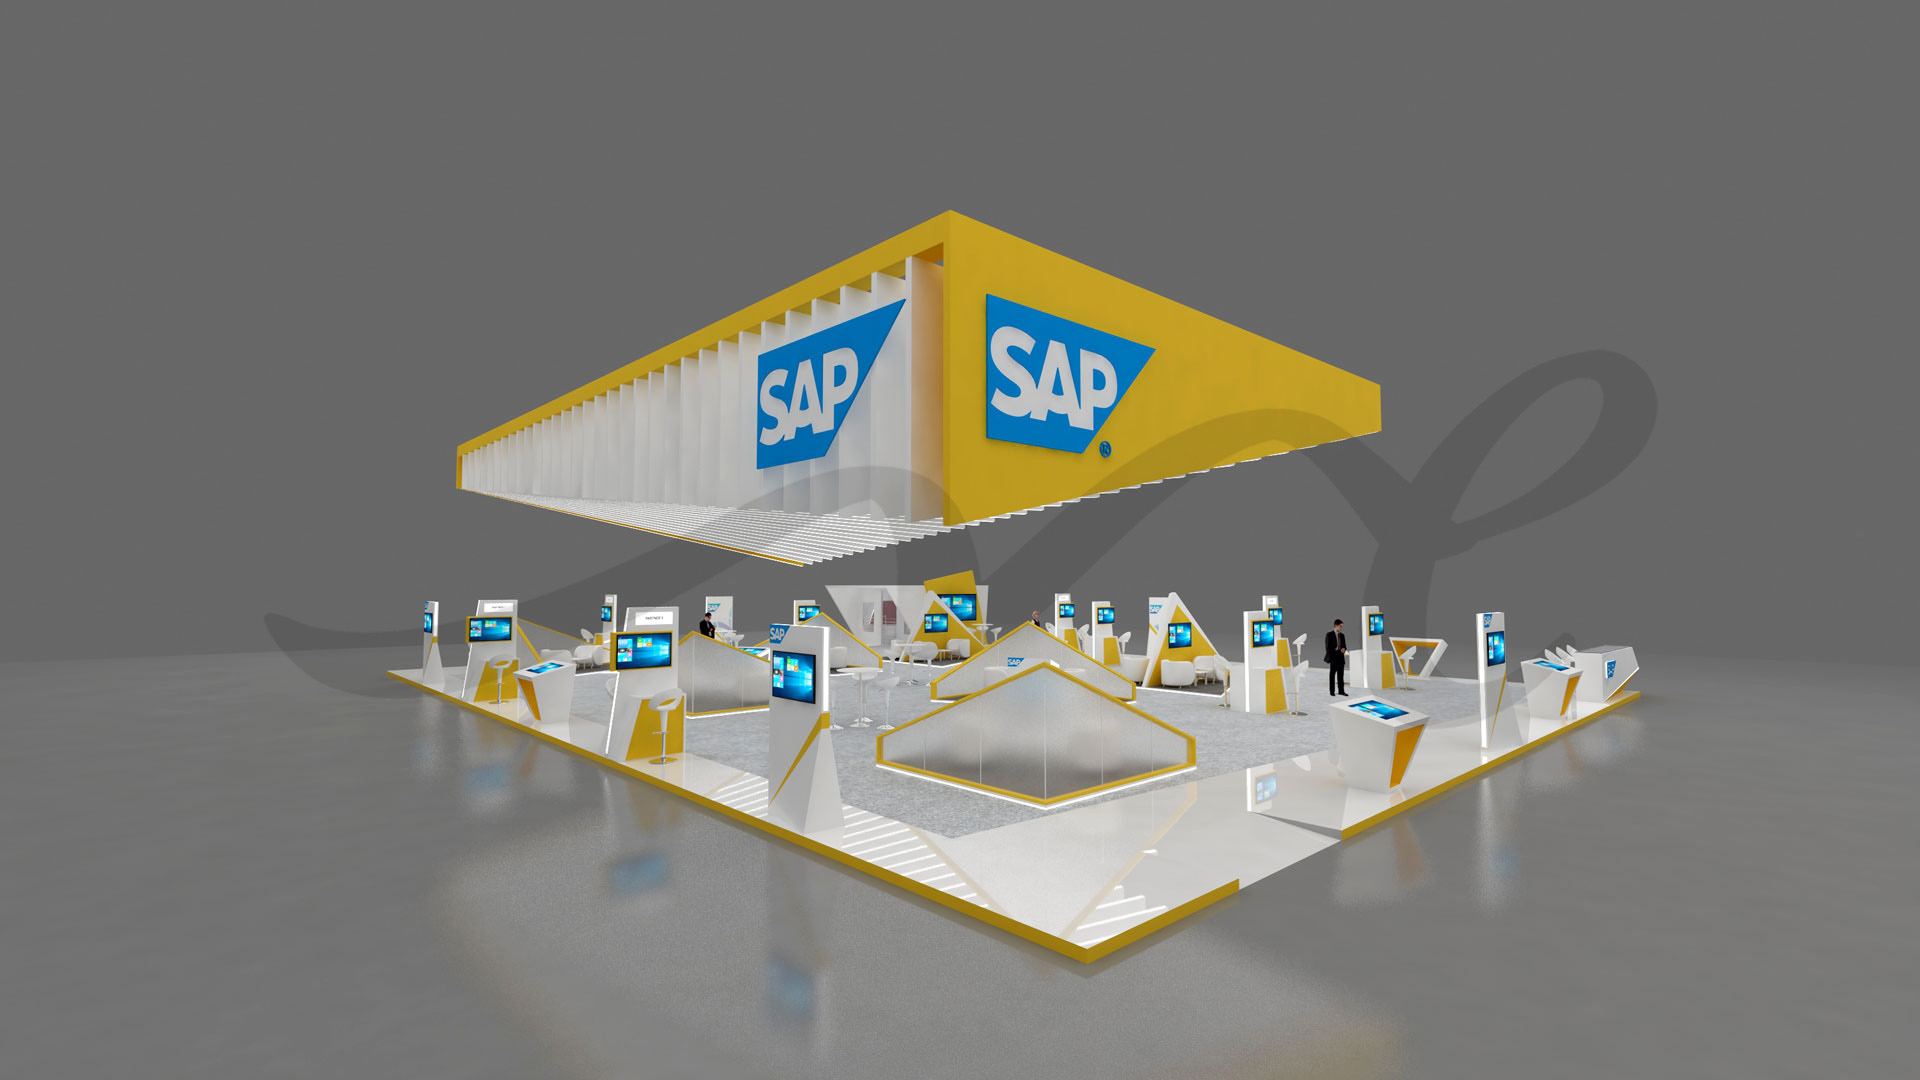 SAP Stand Design by ME Visual